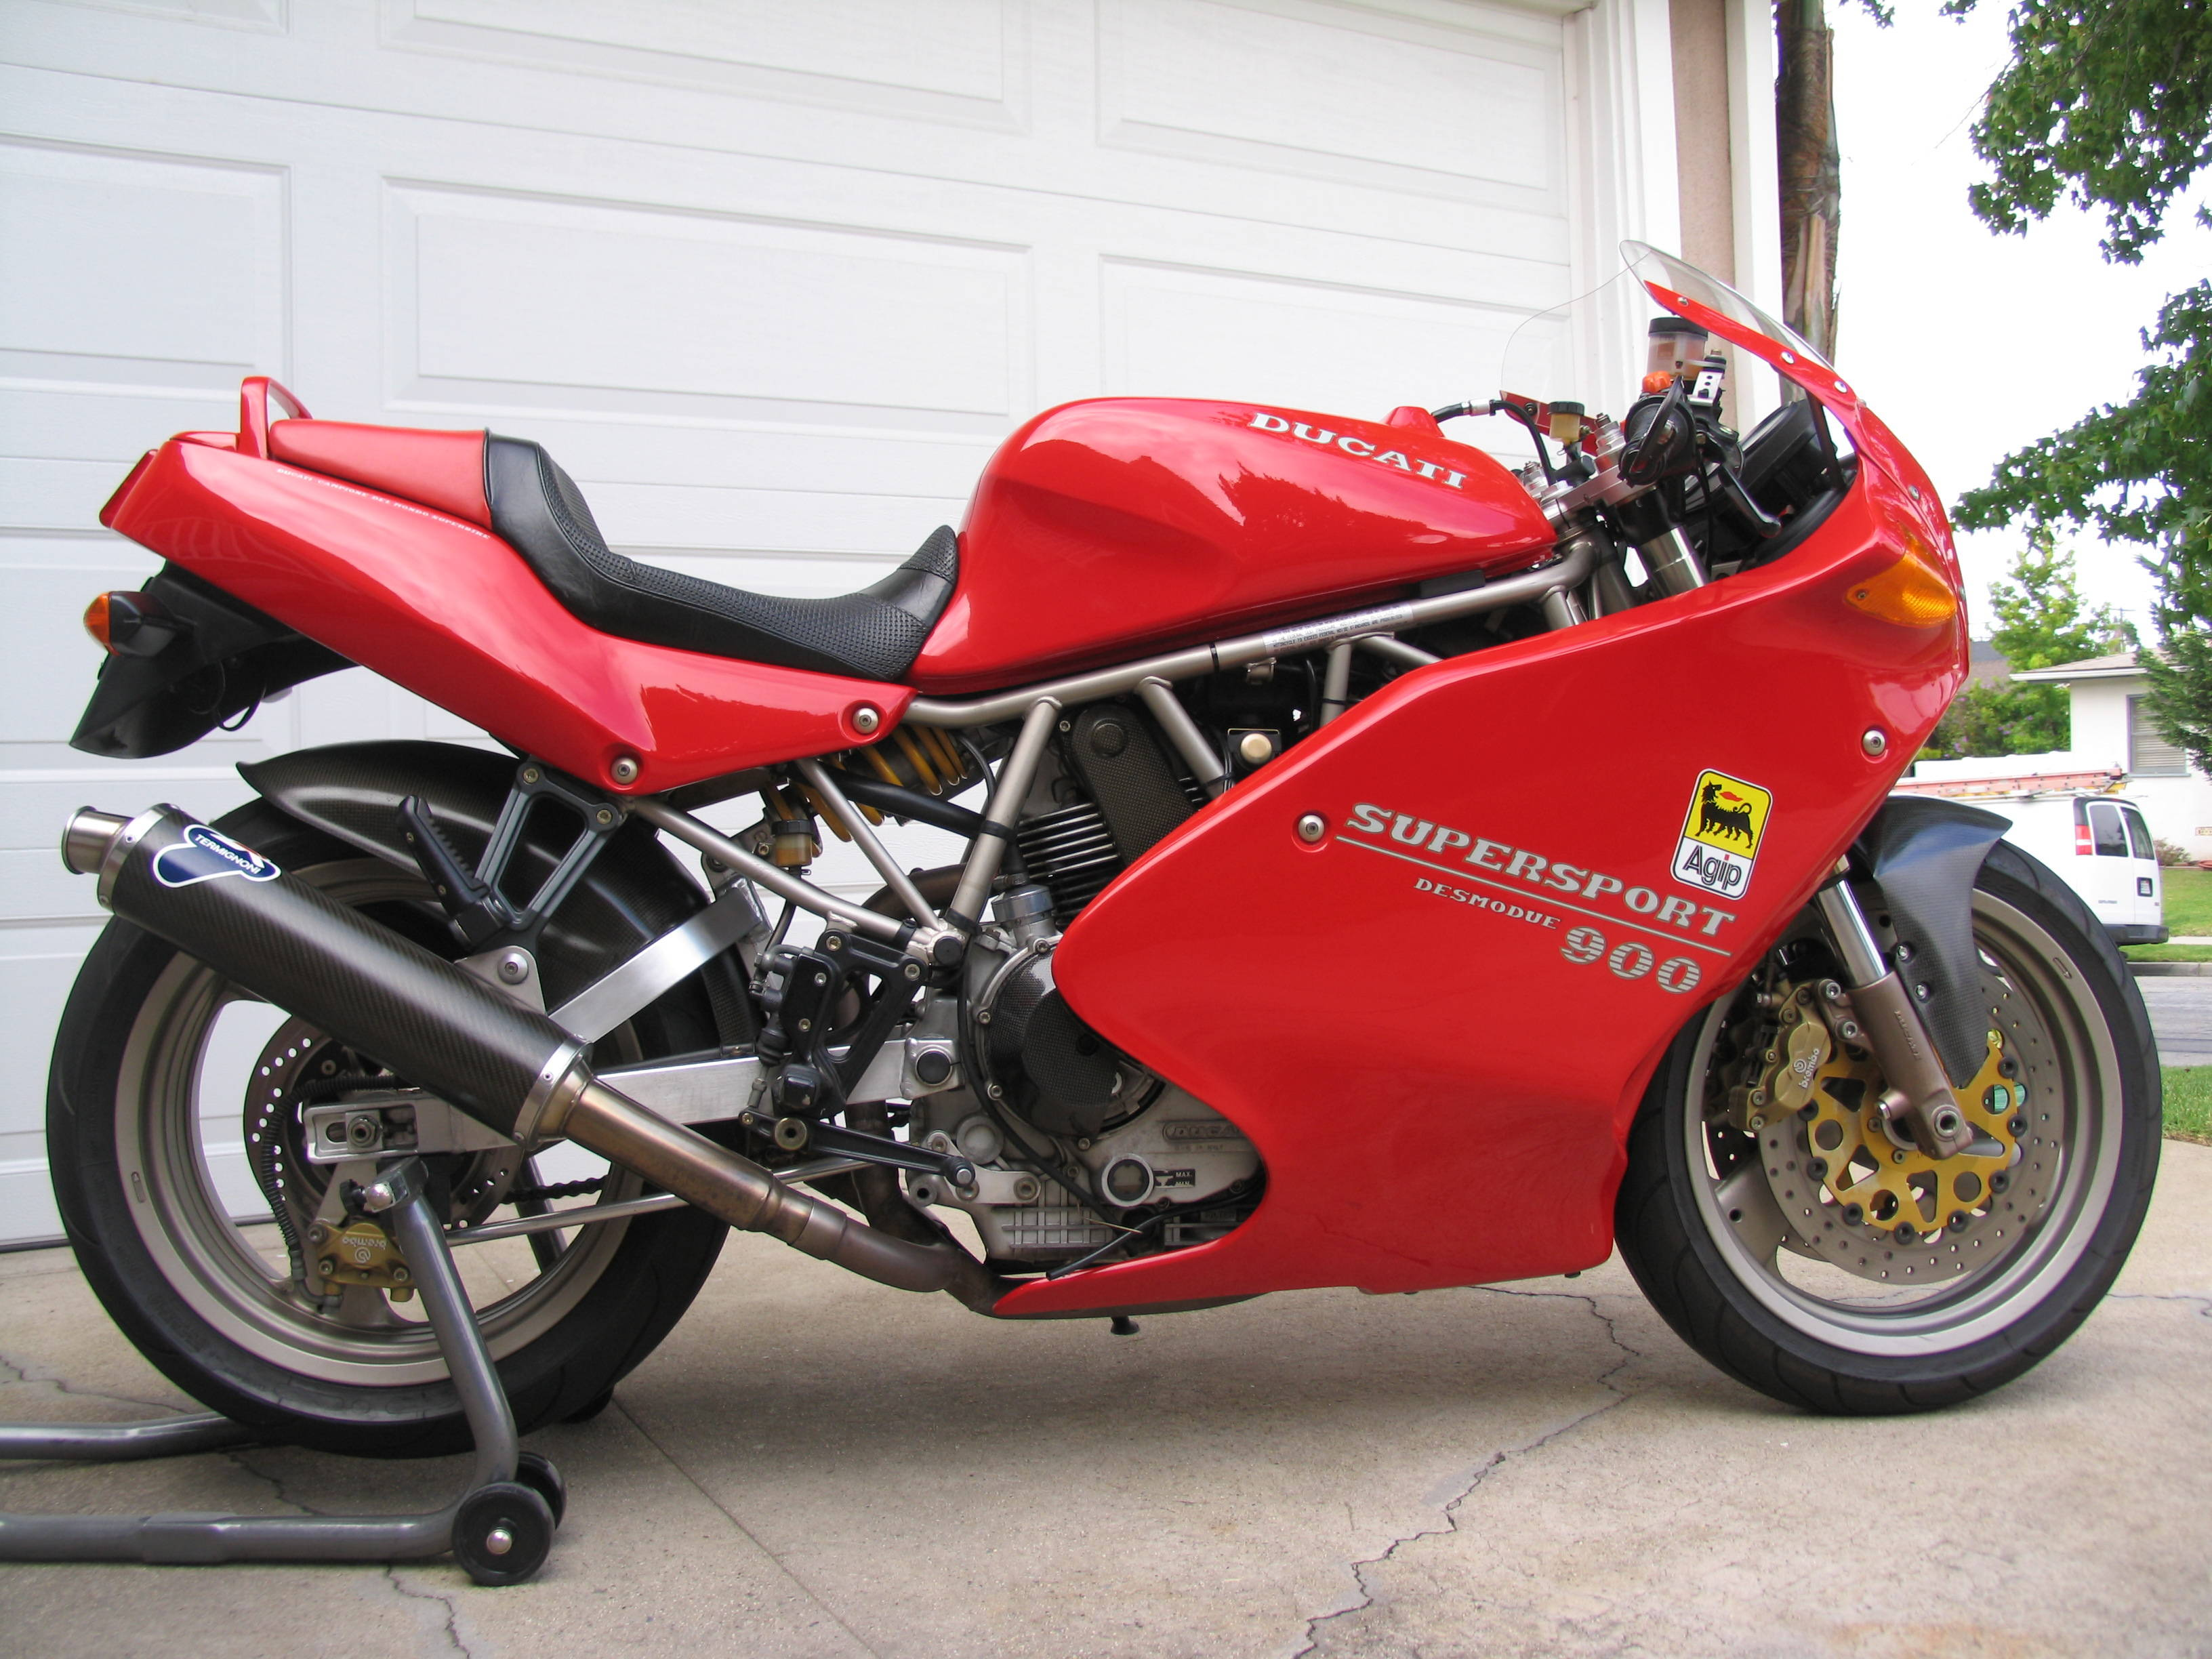 Ducati 900 SS 1997 images #79026